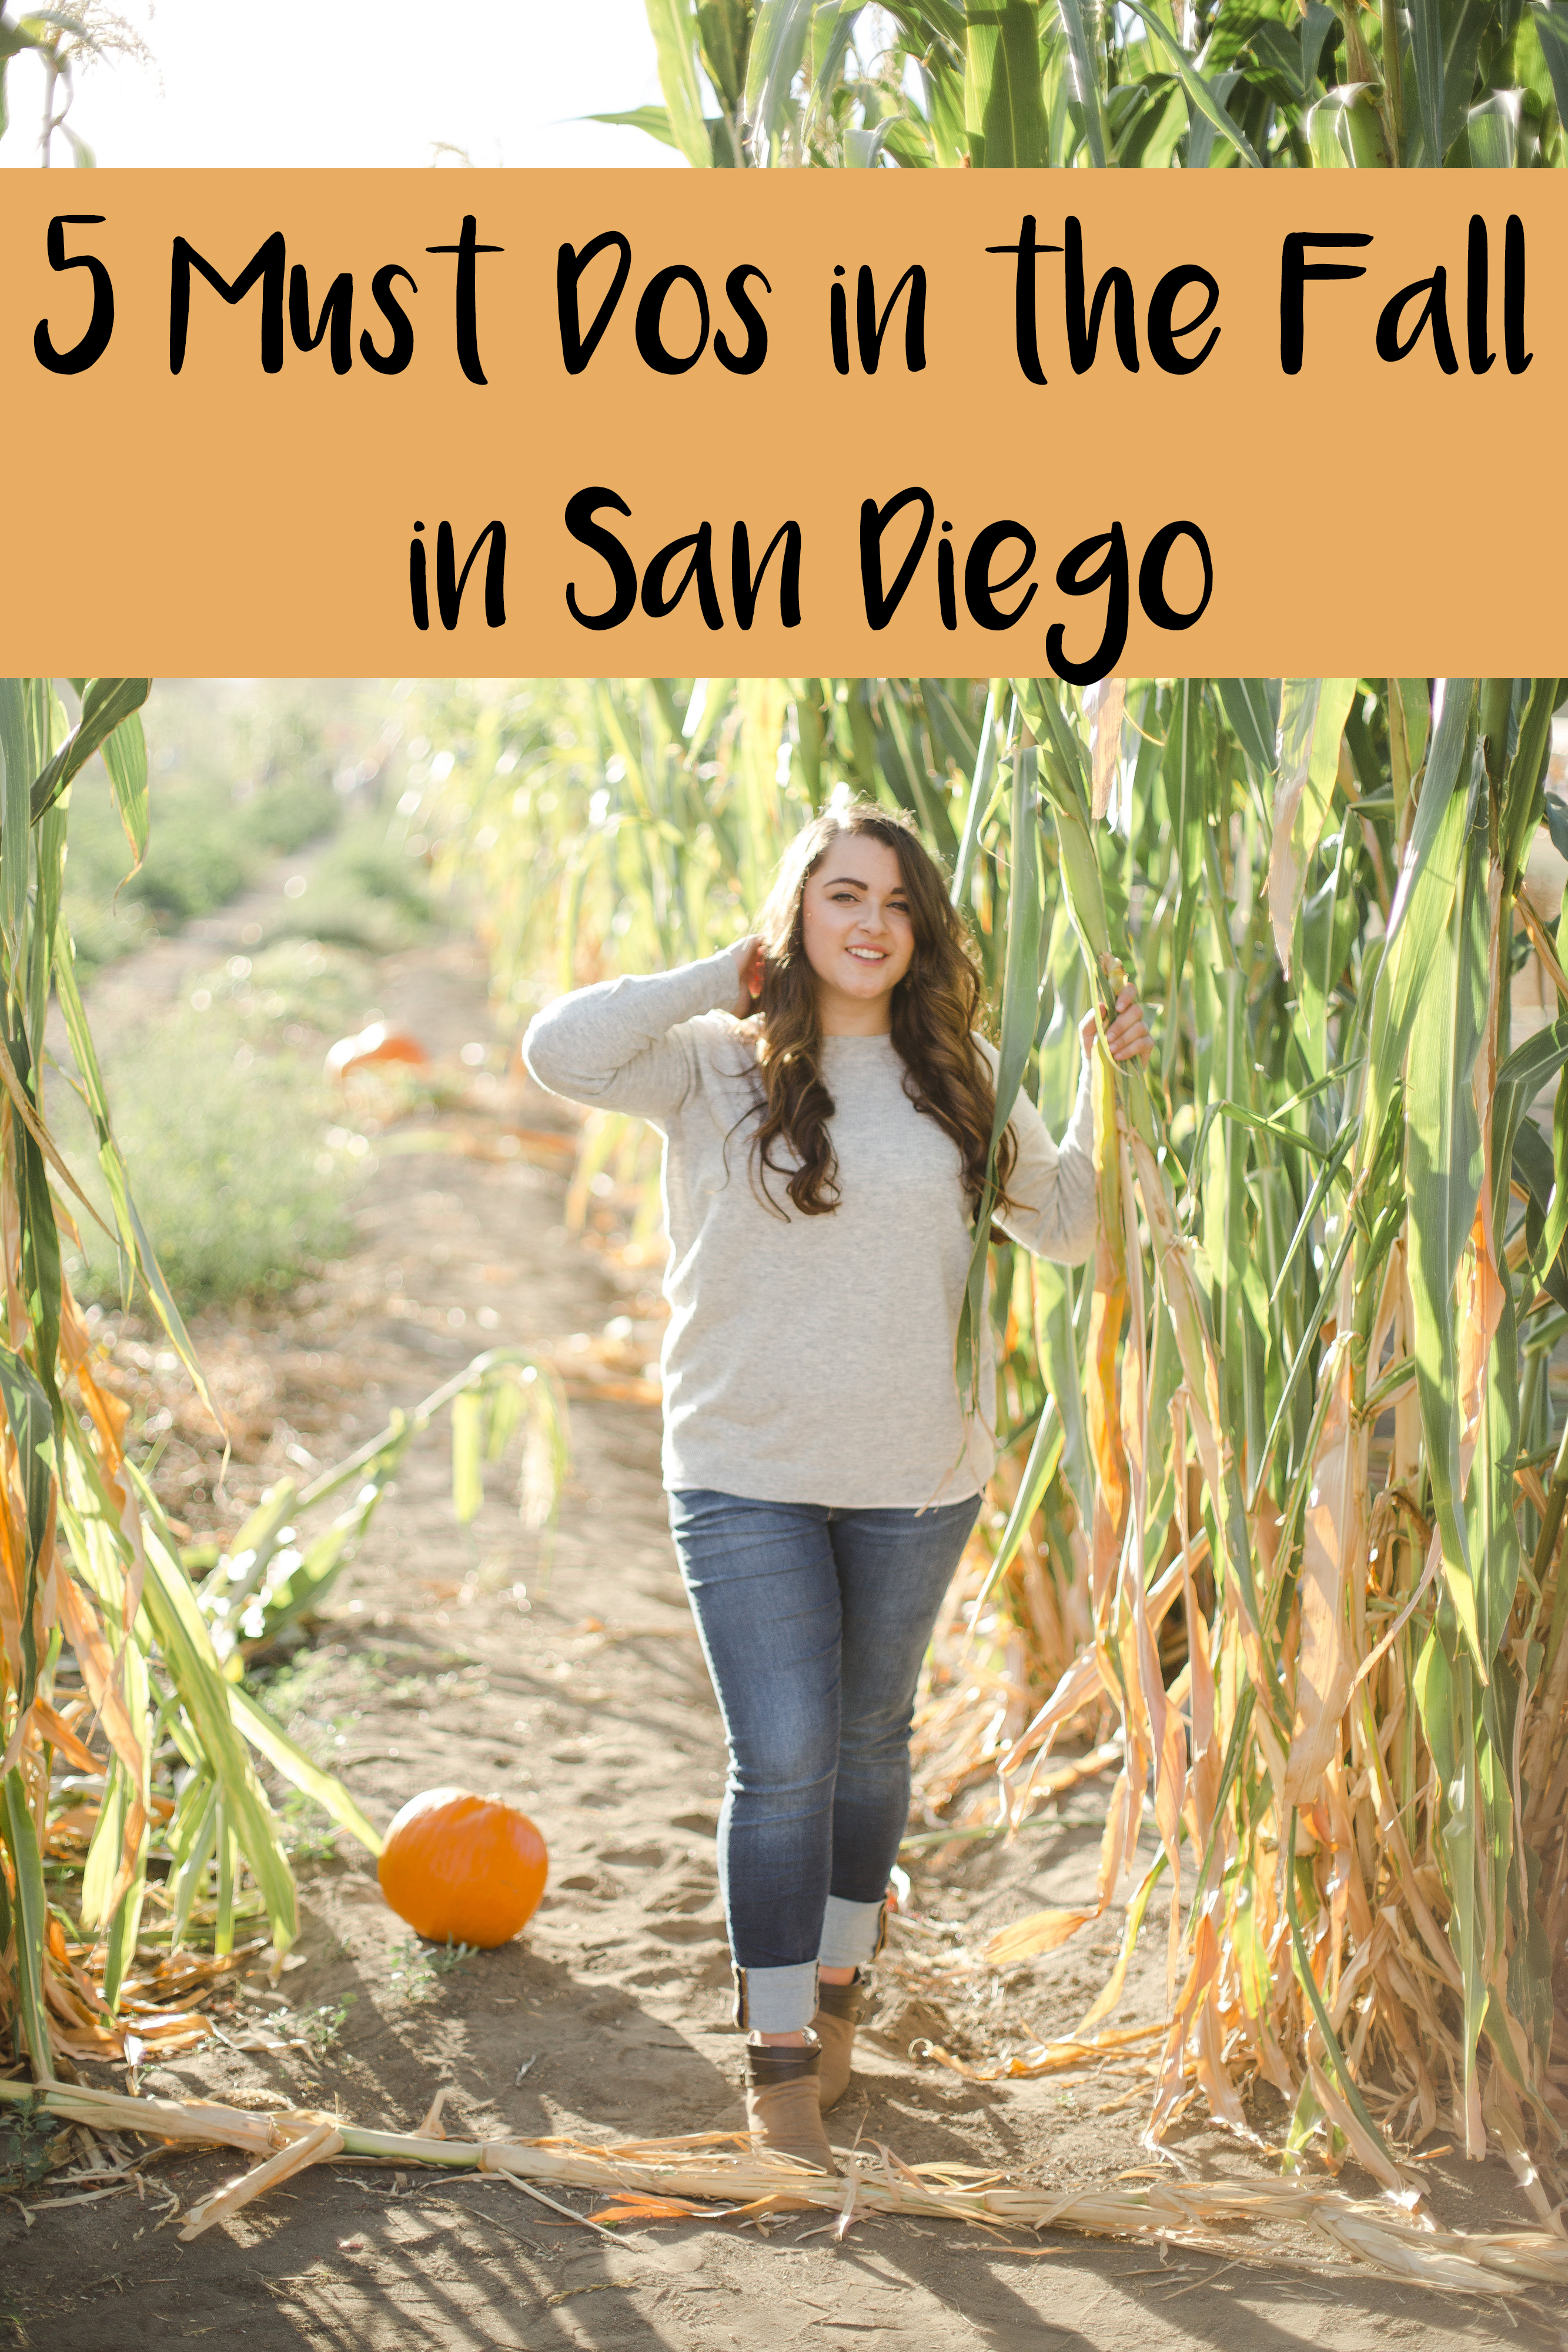 5 Must Dos in the Fall in San Diego featured by top San Diego blog, The Brunette & The Beach: Bates Nut Farm